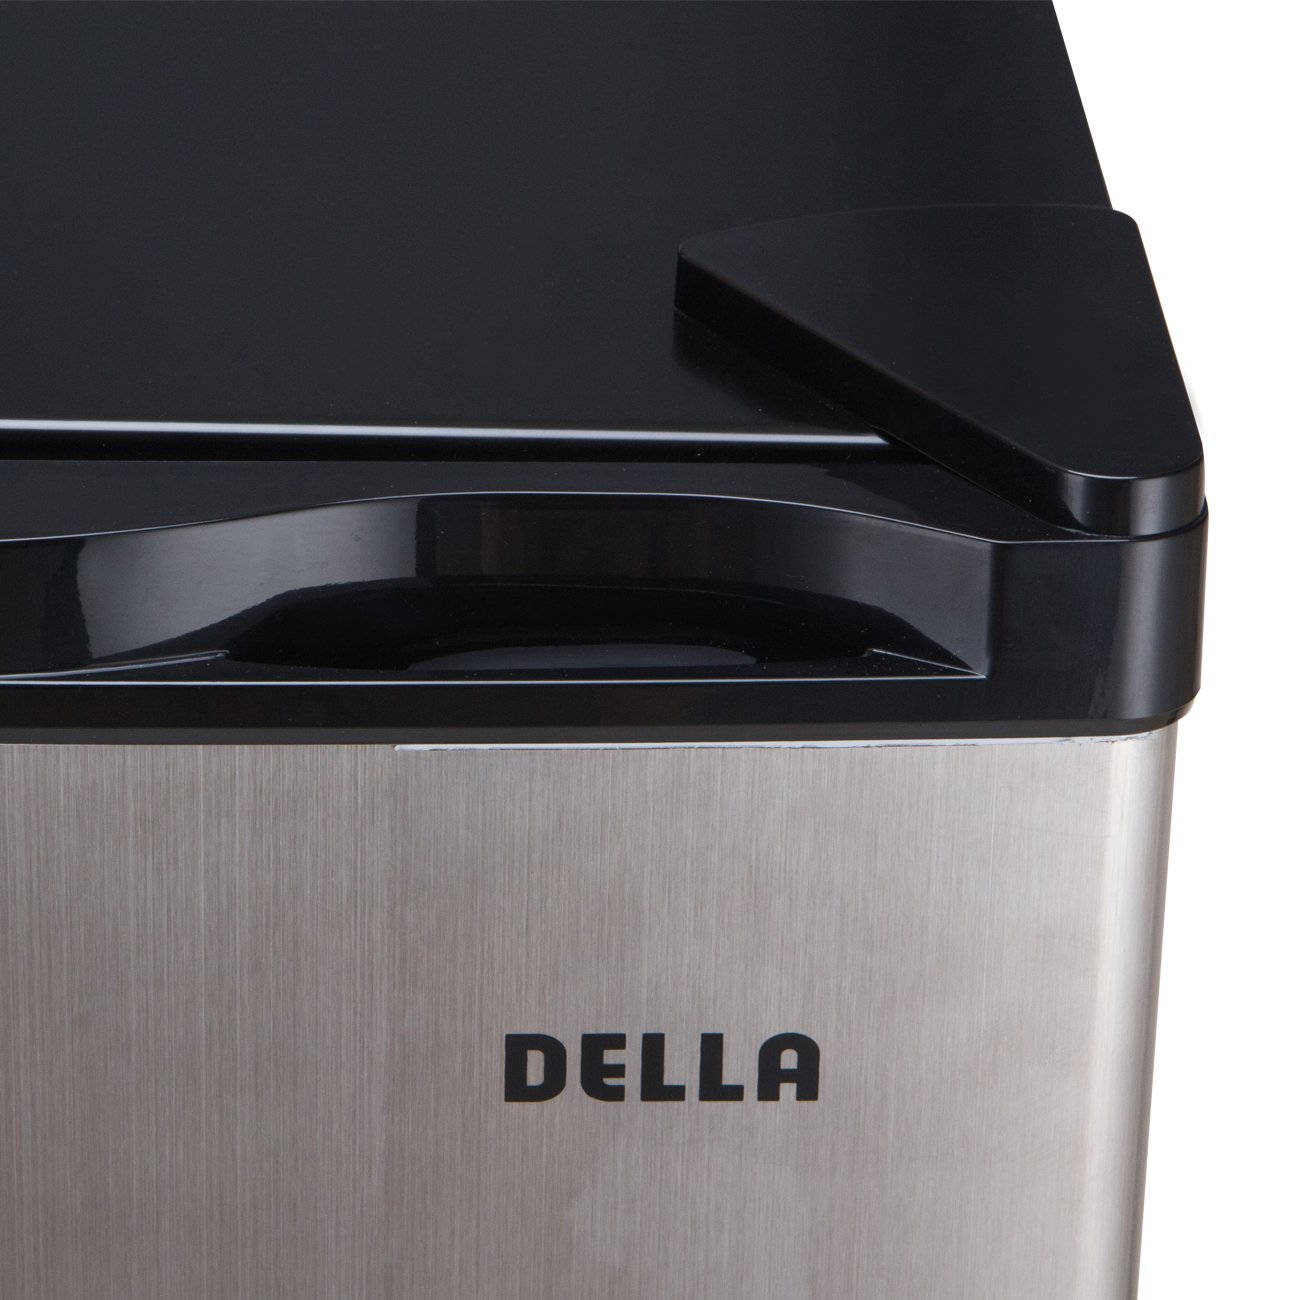 Della Compact Mini Refrigerator & Freezer, 1.6 Cubic Feet, Stainless Steel by DELLA (Image #5)